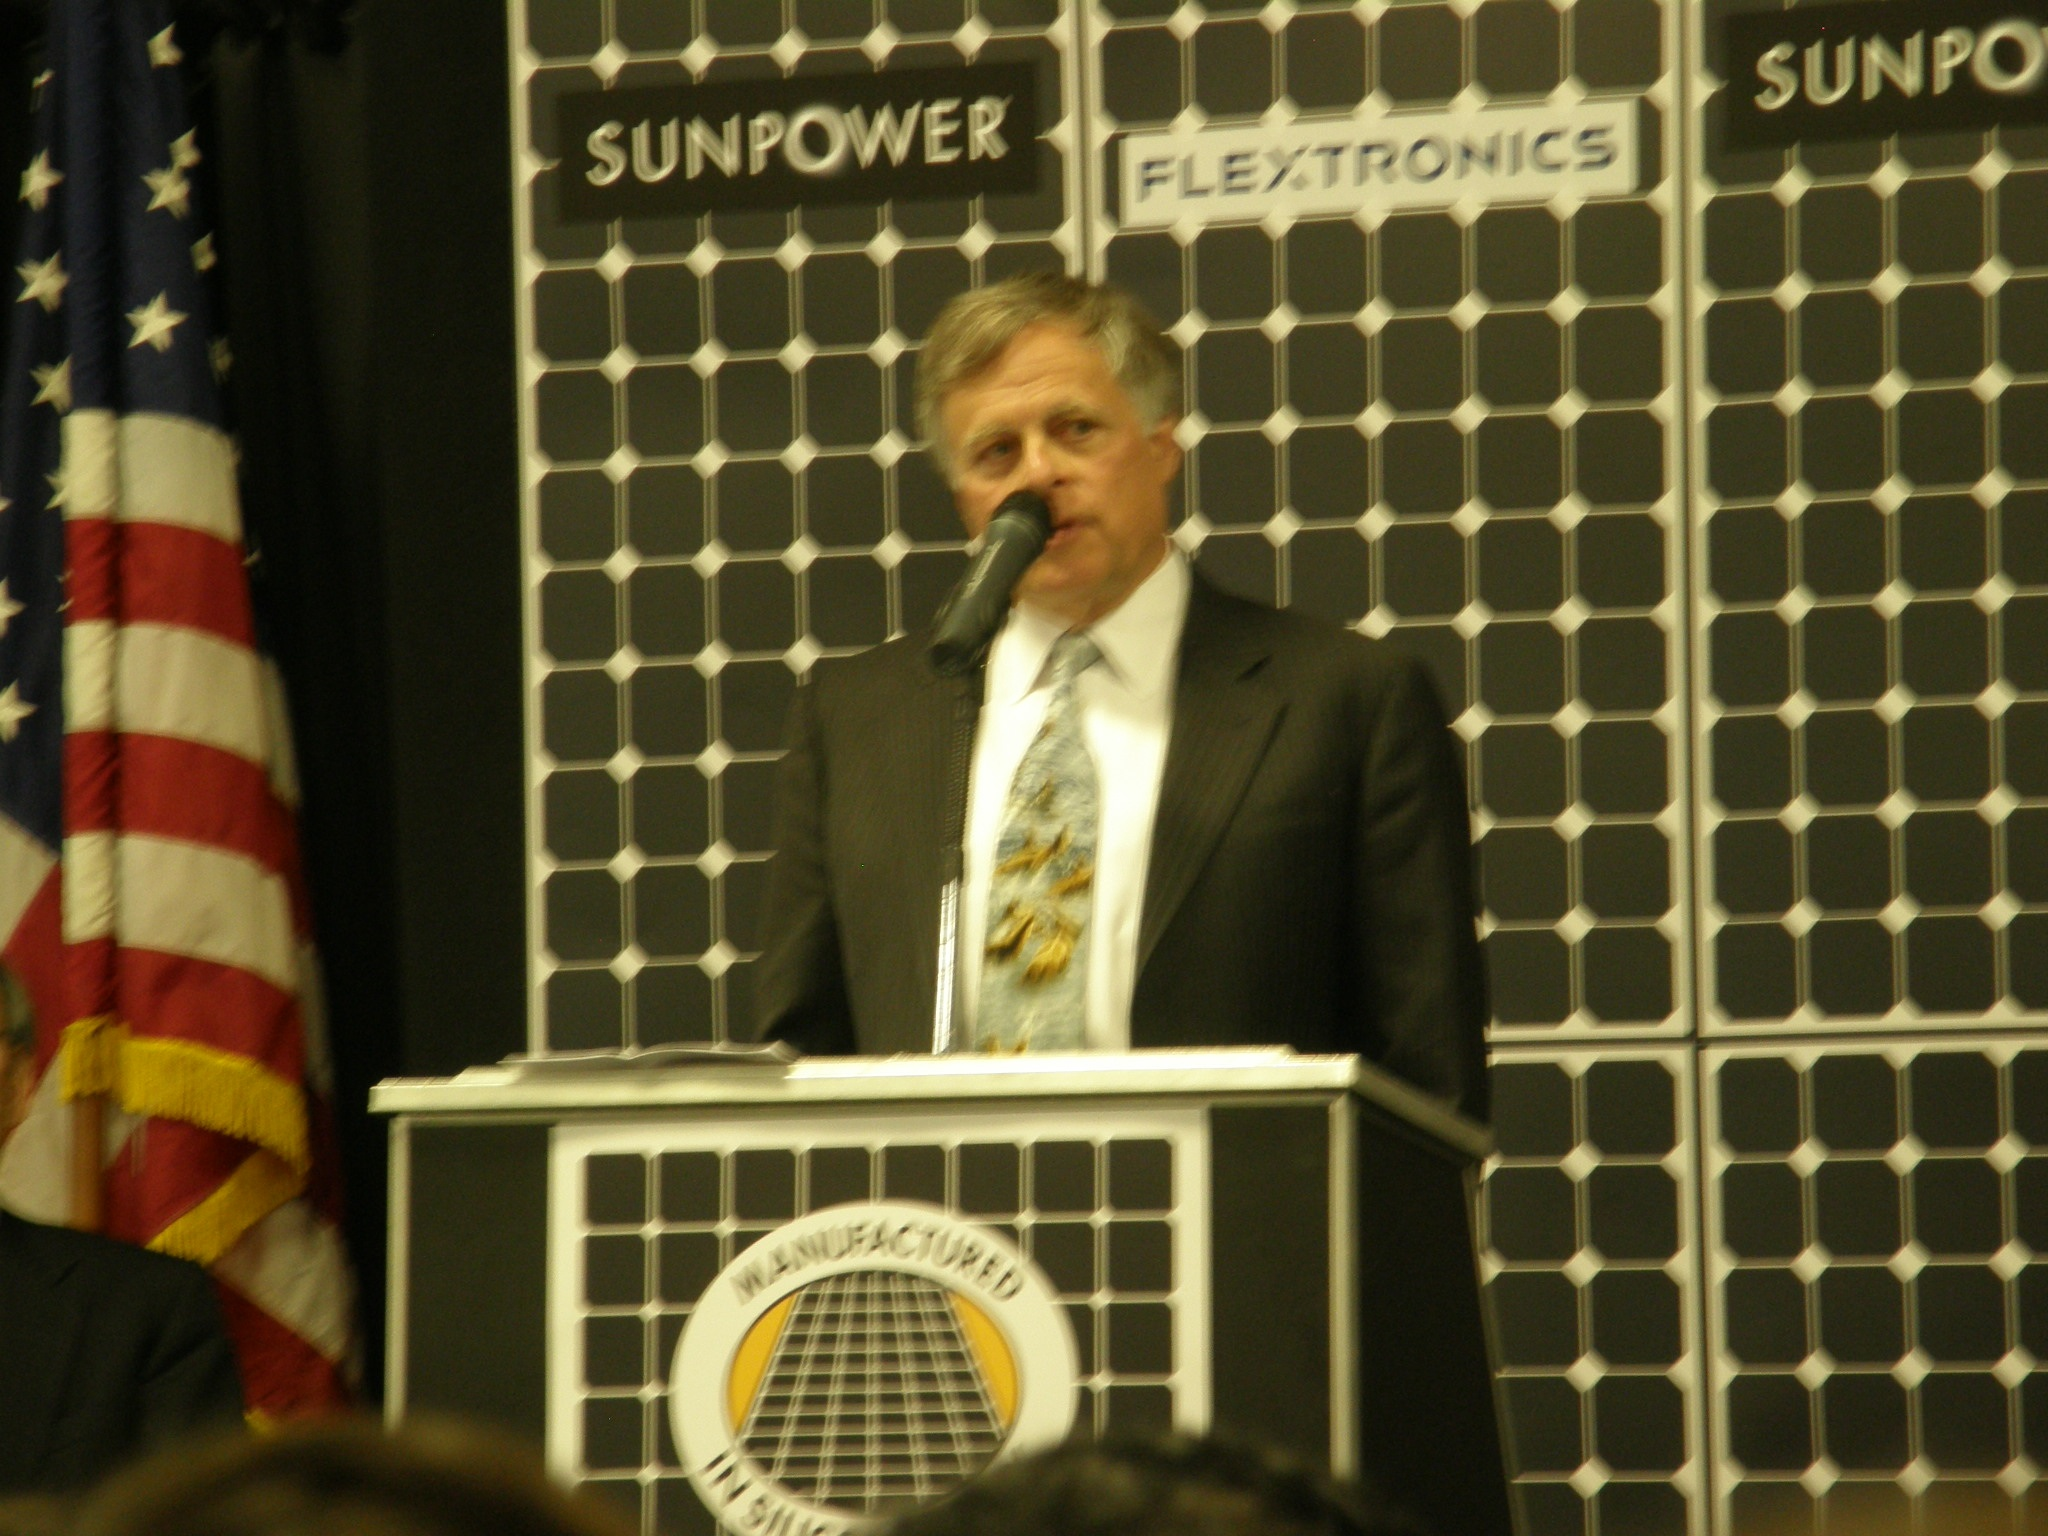 SunPower Founder Dick Swanson gives remarks at event in 2011